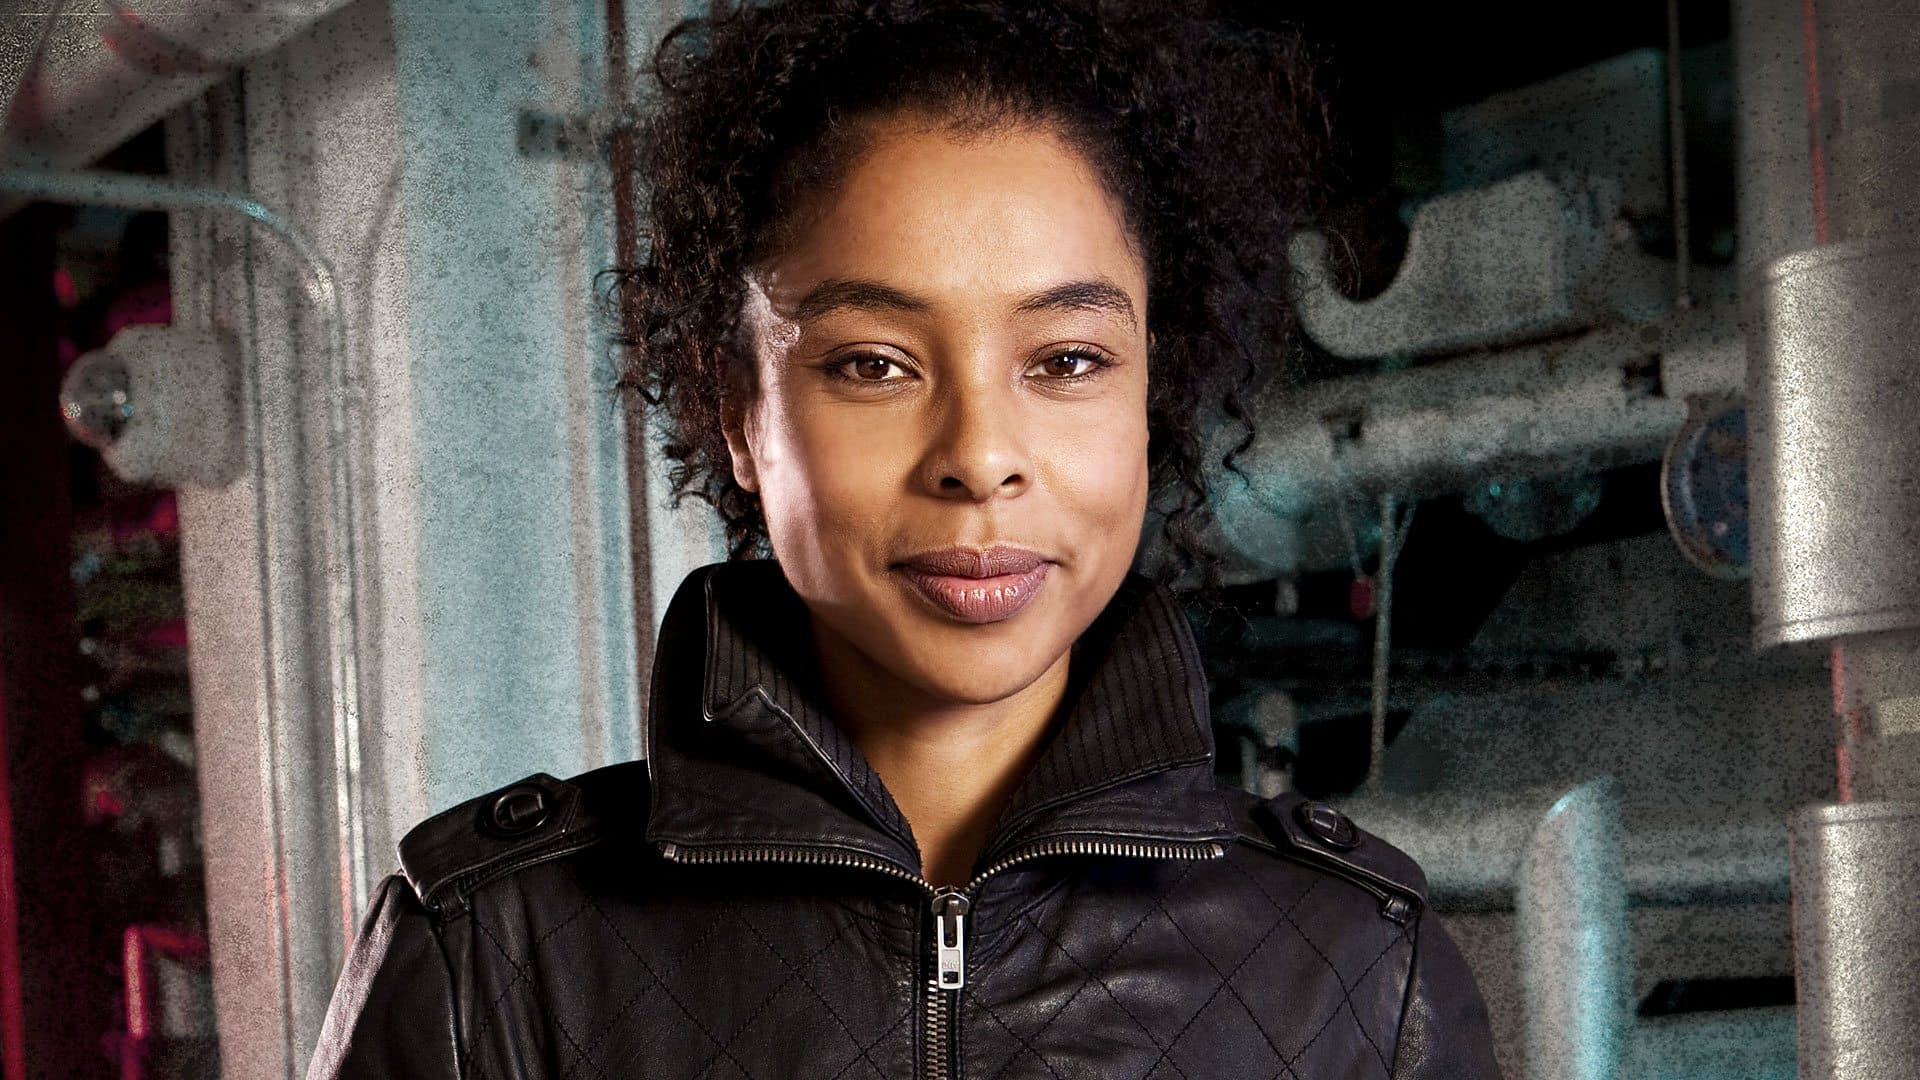 Sophie Okonedo HD Desktop Wallpapers | 7wallpapers.net